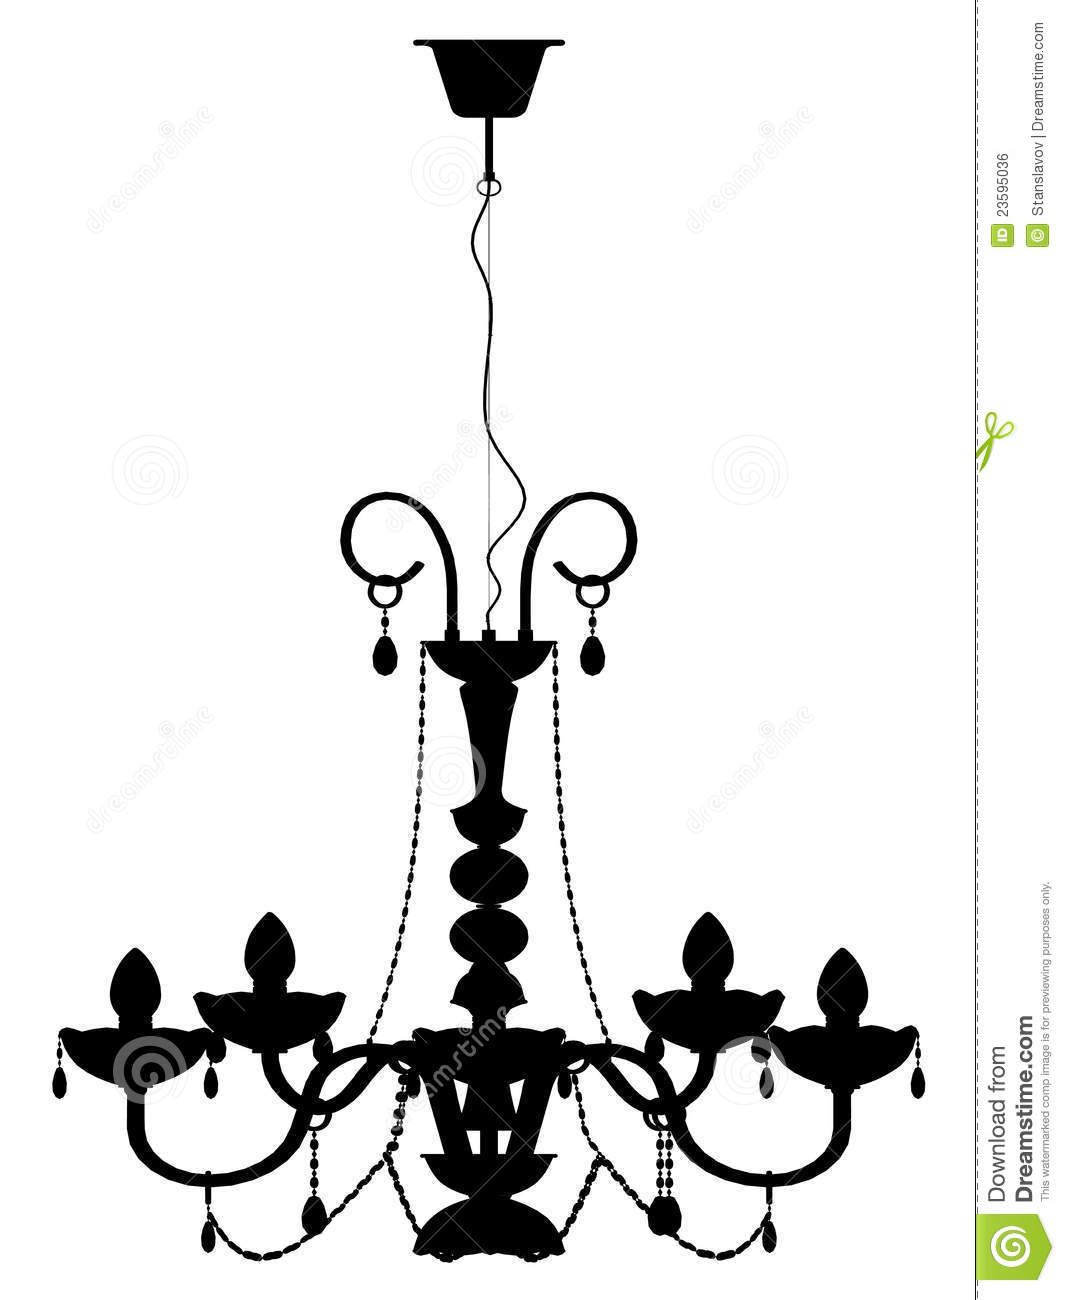 Chandelier Lamp Outline Silhouette Stock Photo